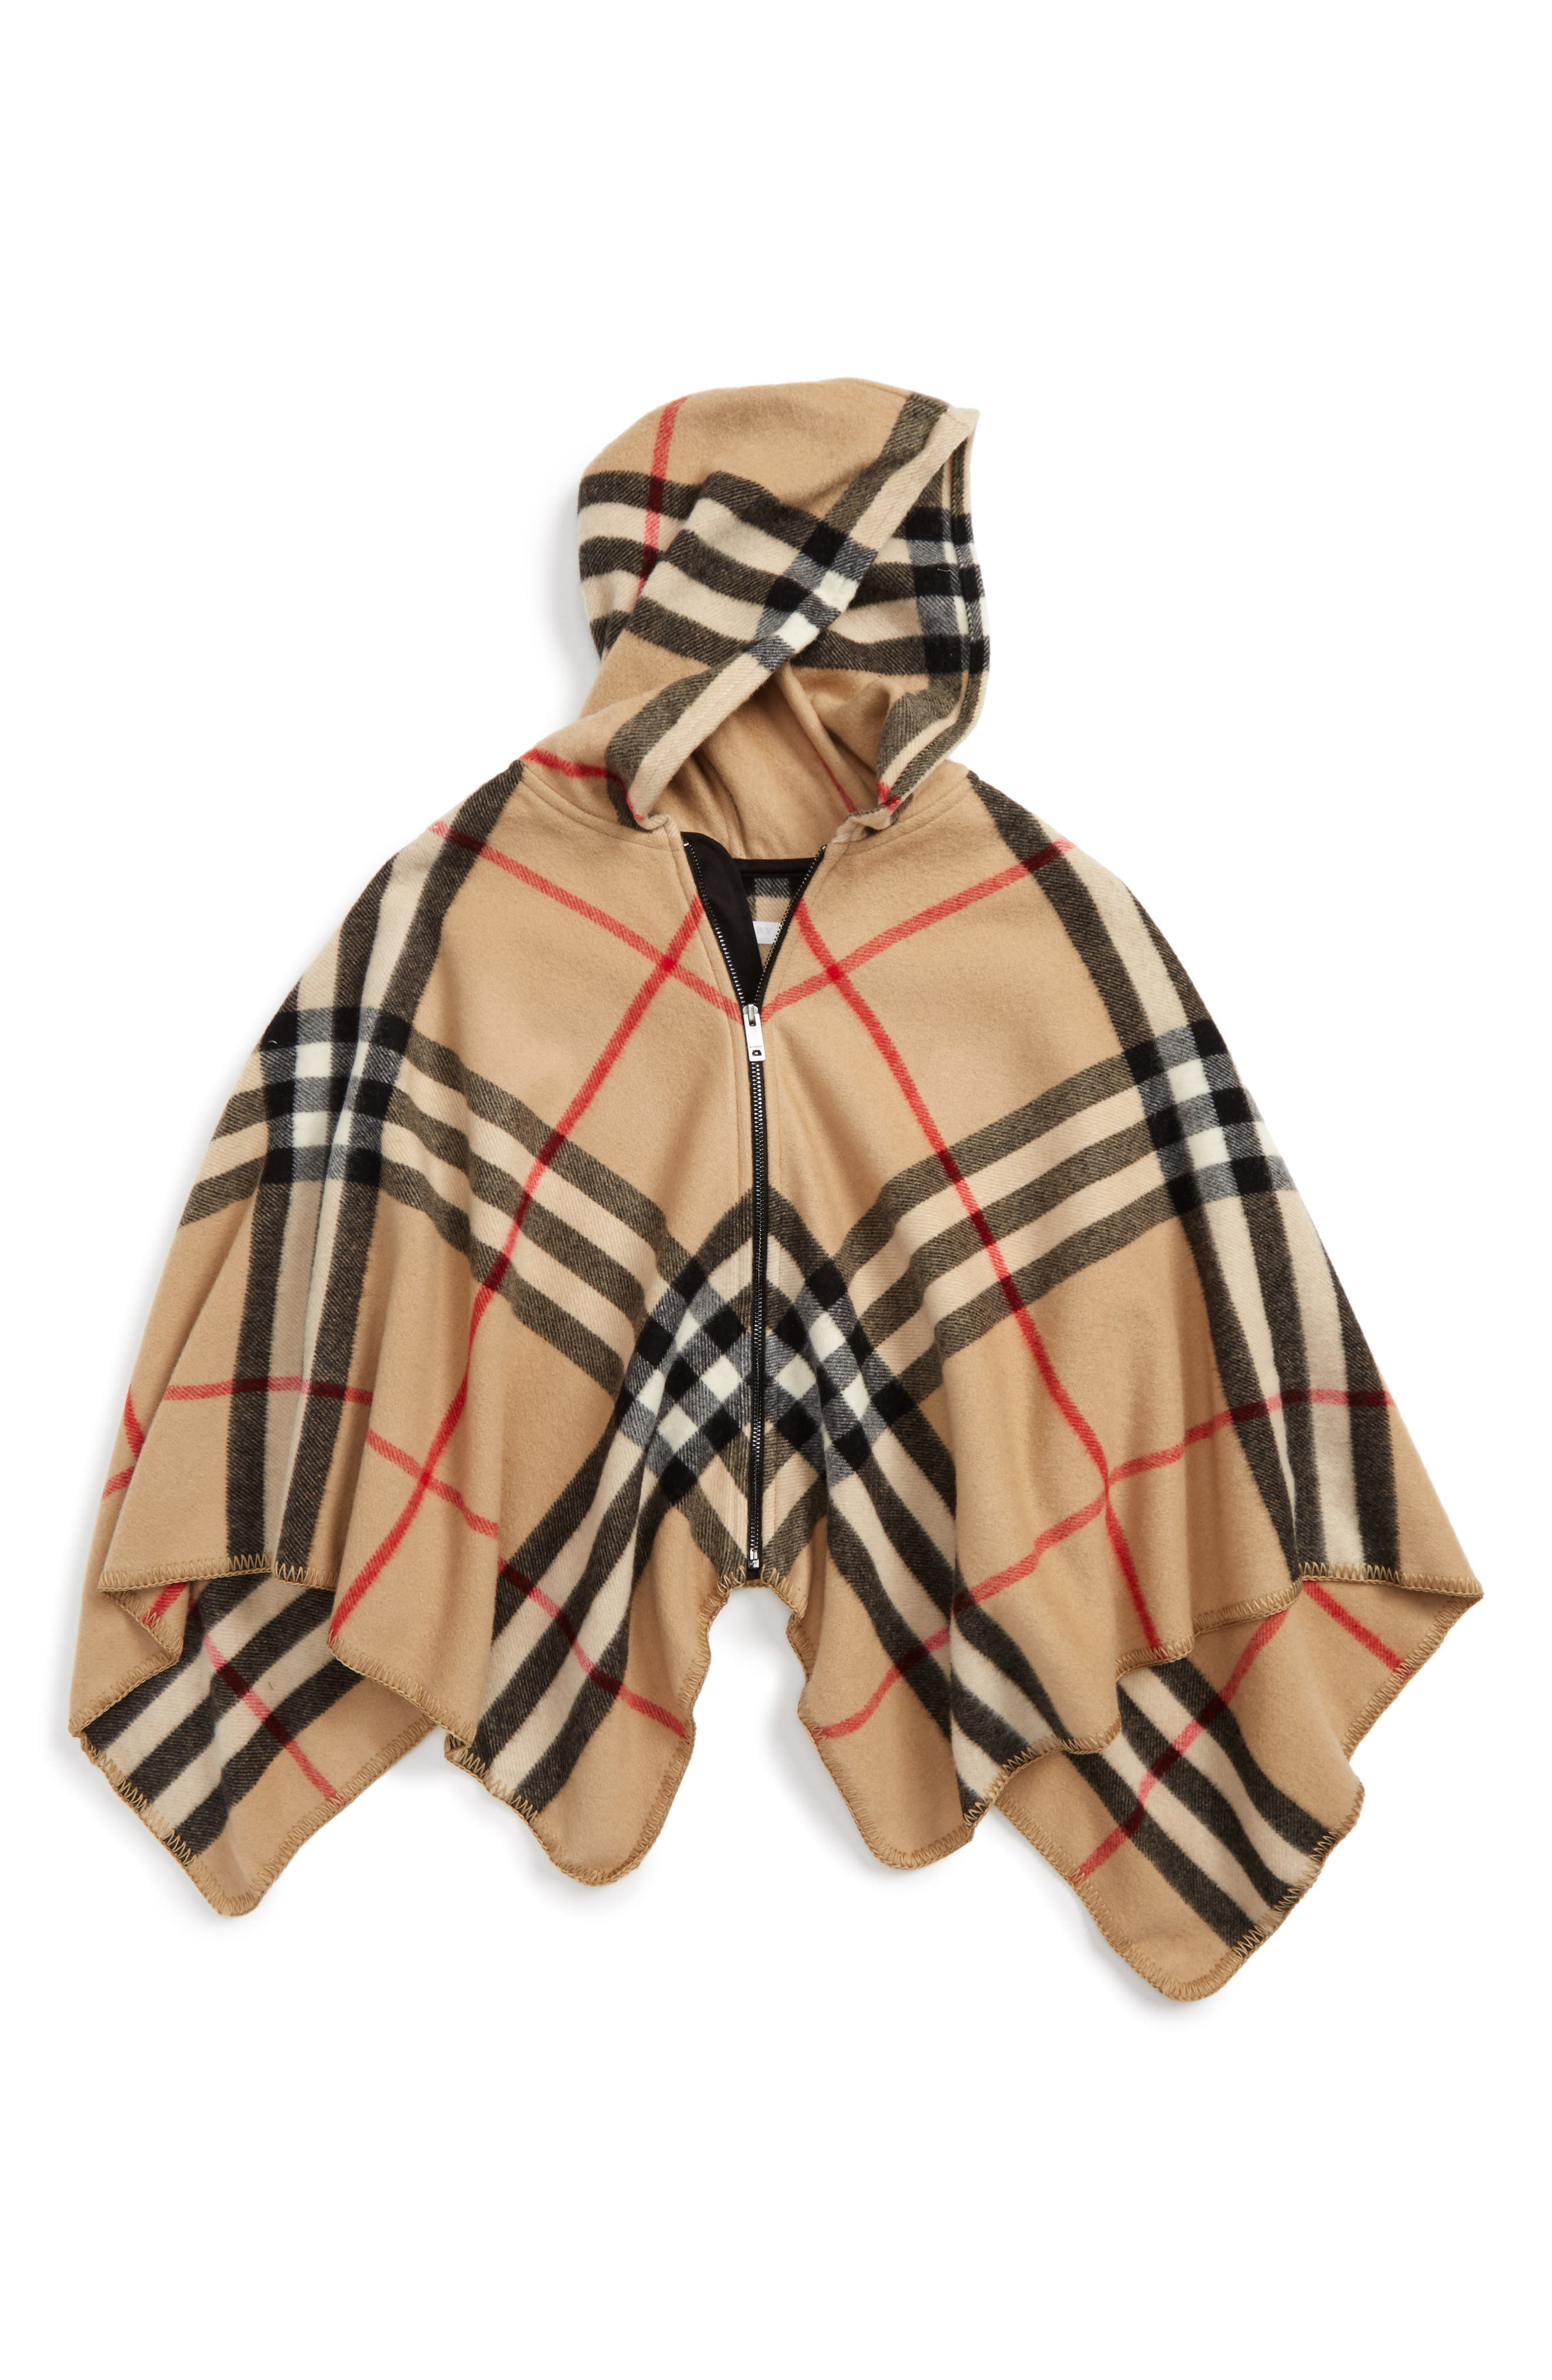 Main Image - Burberry Vickie Check Wool & Cashmere Hooded Cape (Little Girls & Big Girls)